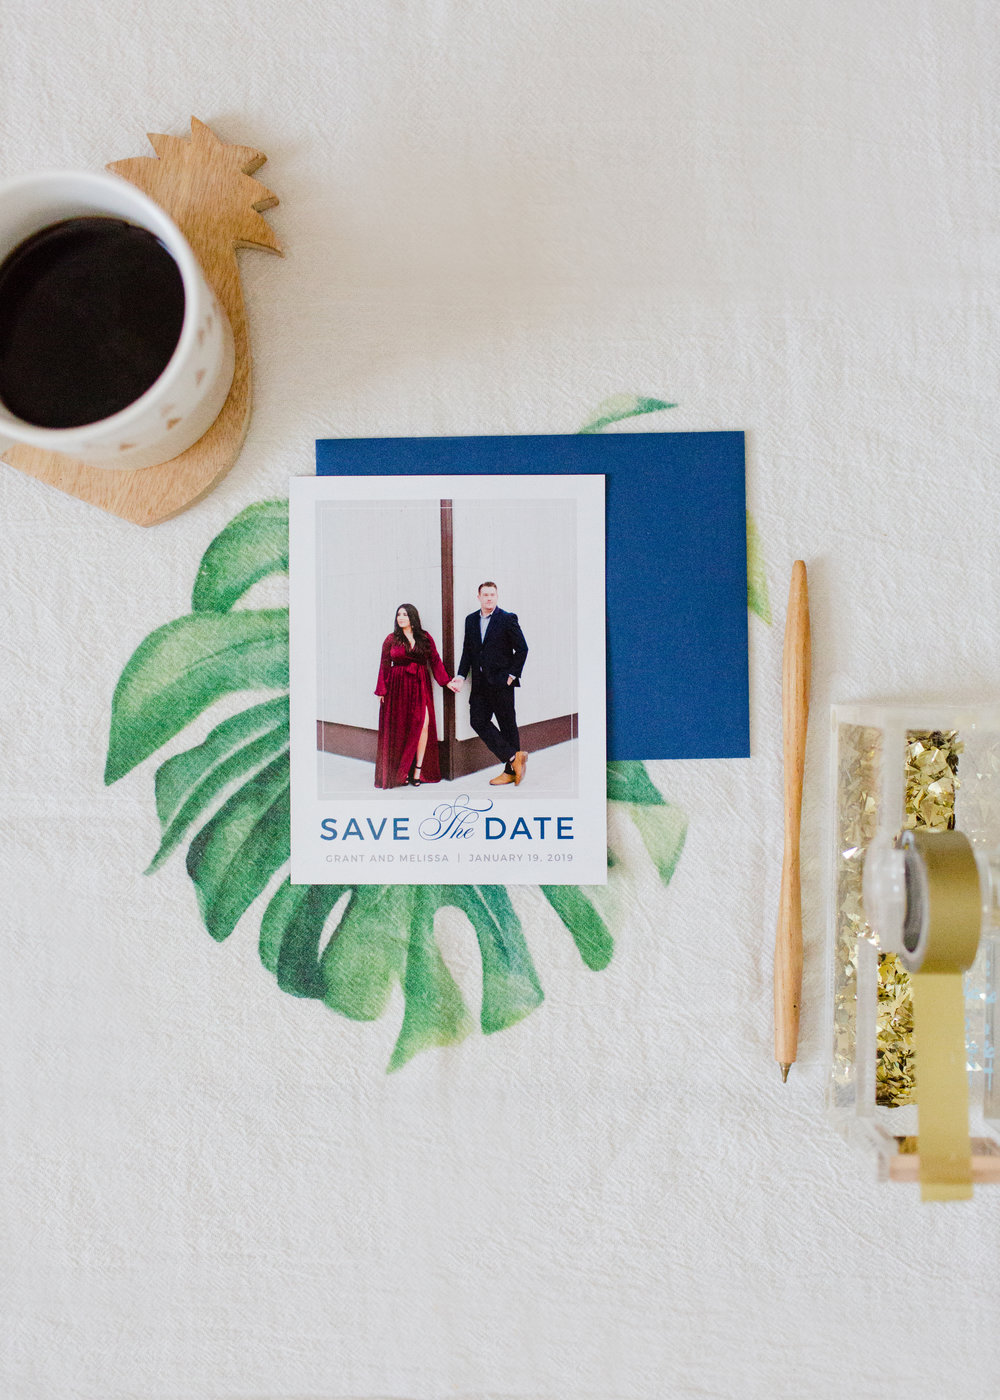 katherine_beth_photography_san_diego_photographer_Brand_rep_San_diego_wedding_Photographer_Basic_Invite_Wedding_Invitations_Save_The_Date_Wedding_Invites-2.jpg